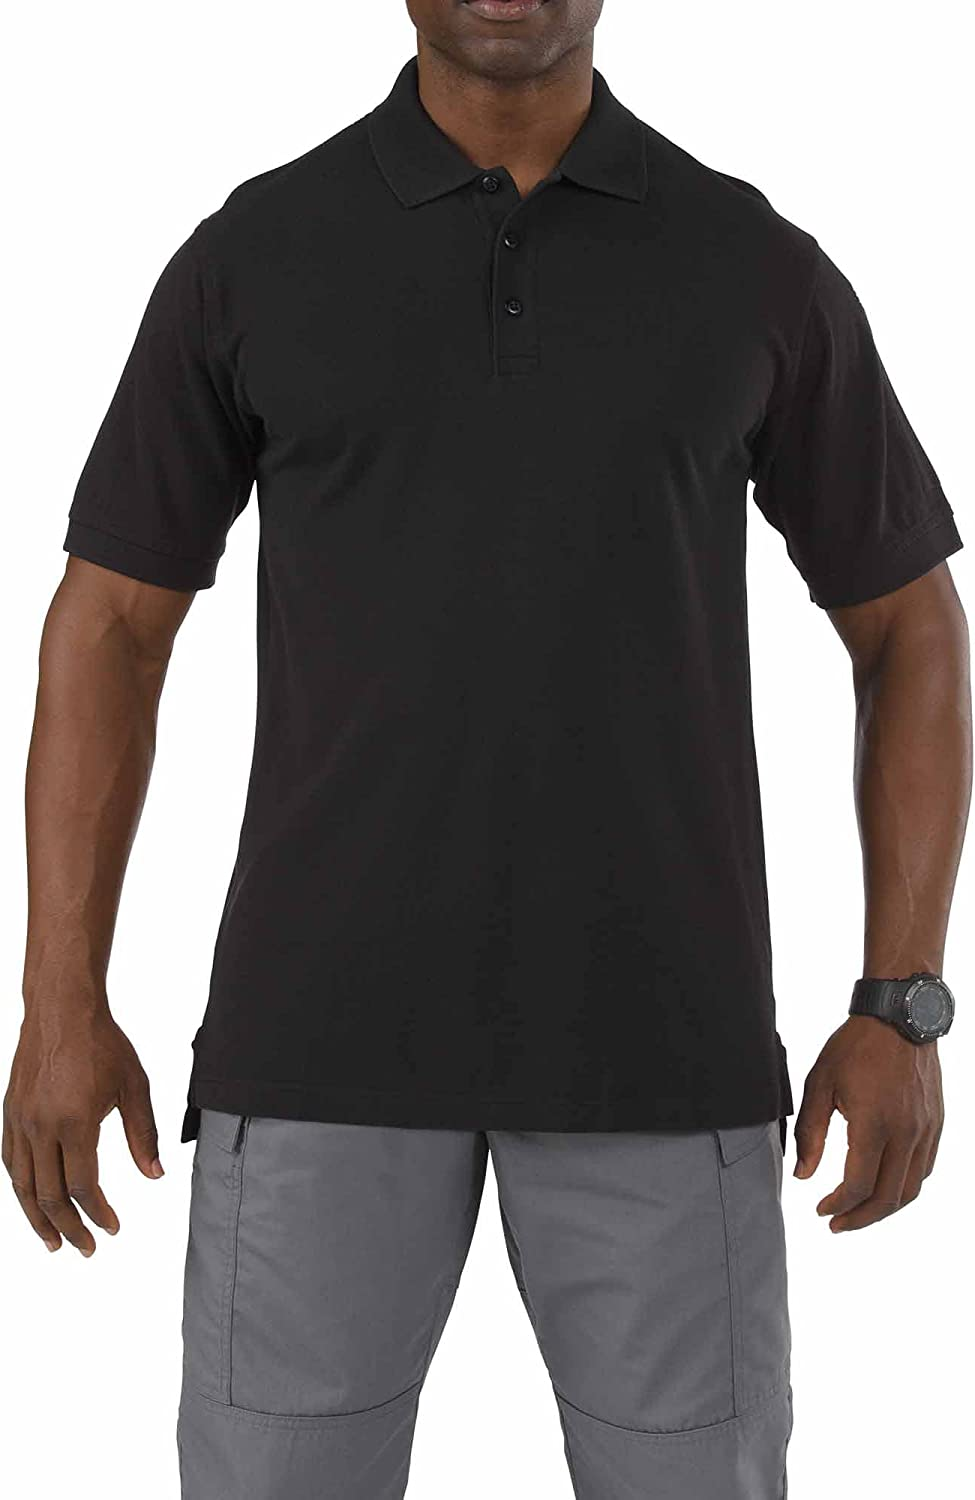 5.11 Men's Tactical Short-Sleeve Professional Polo